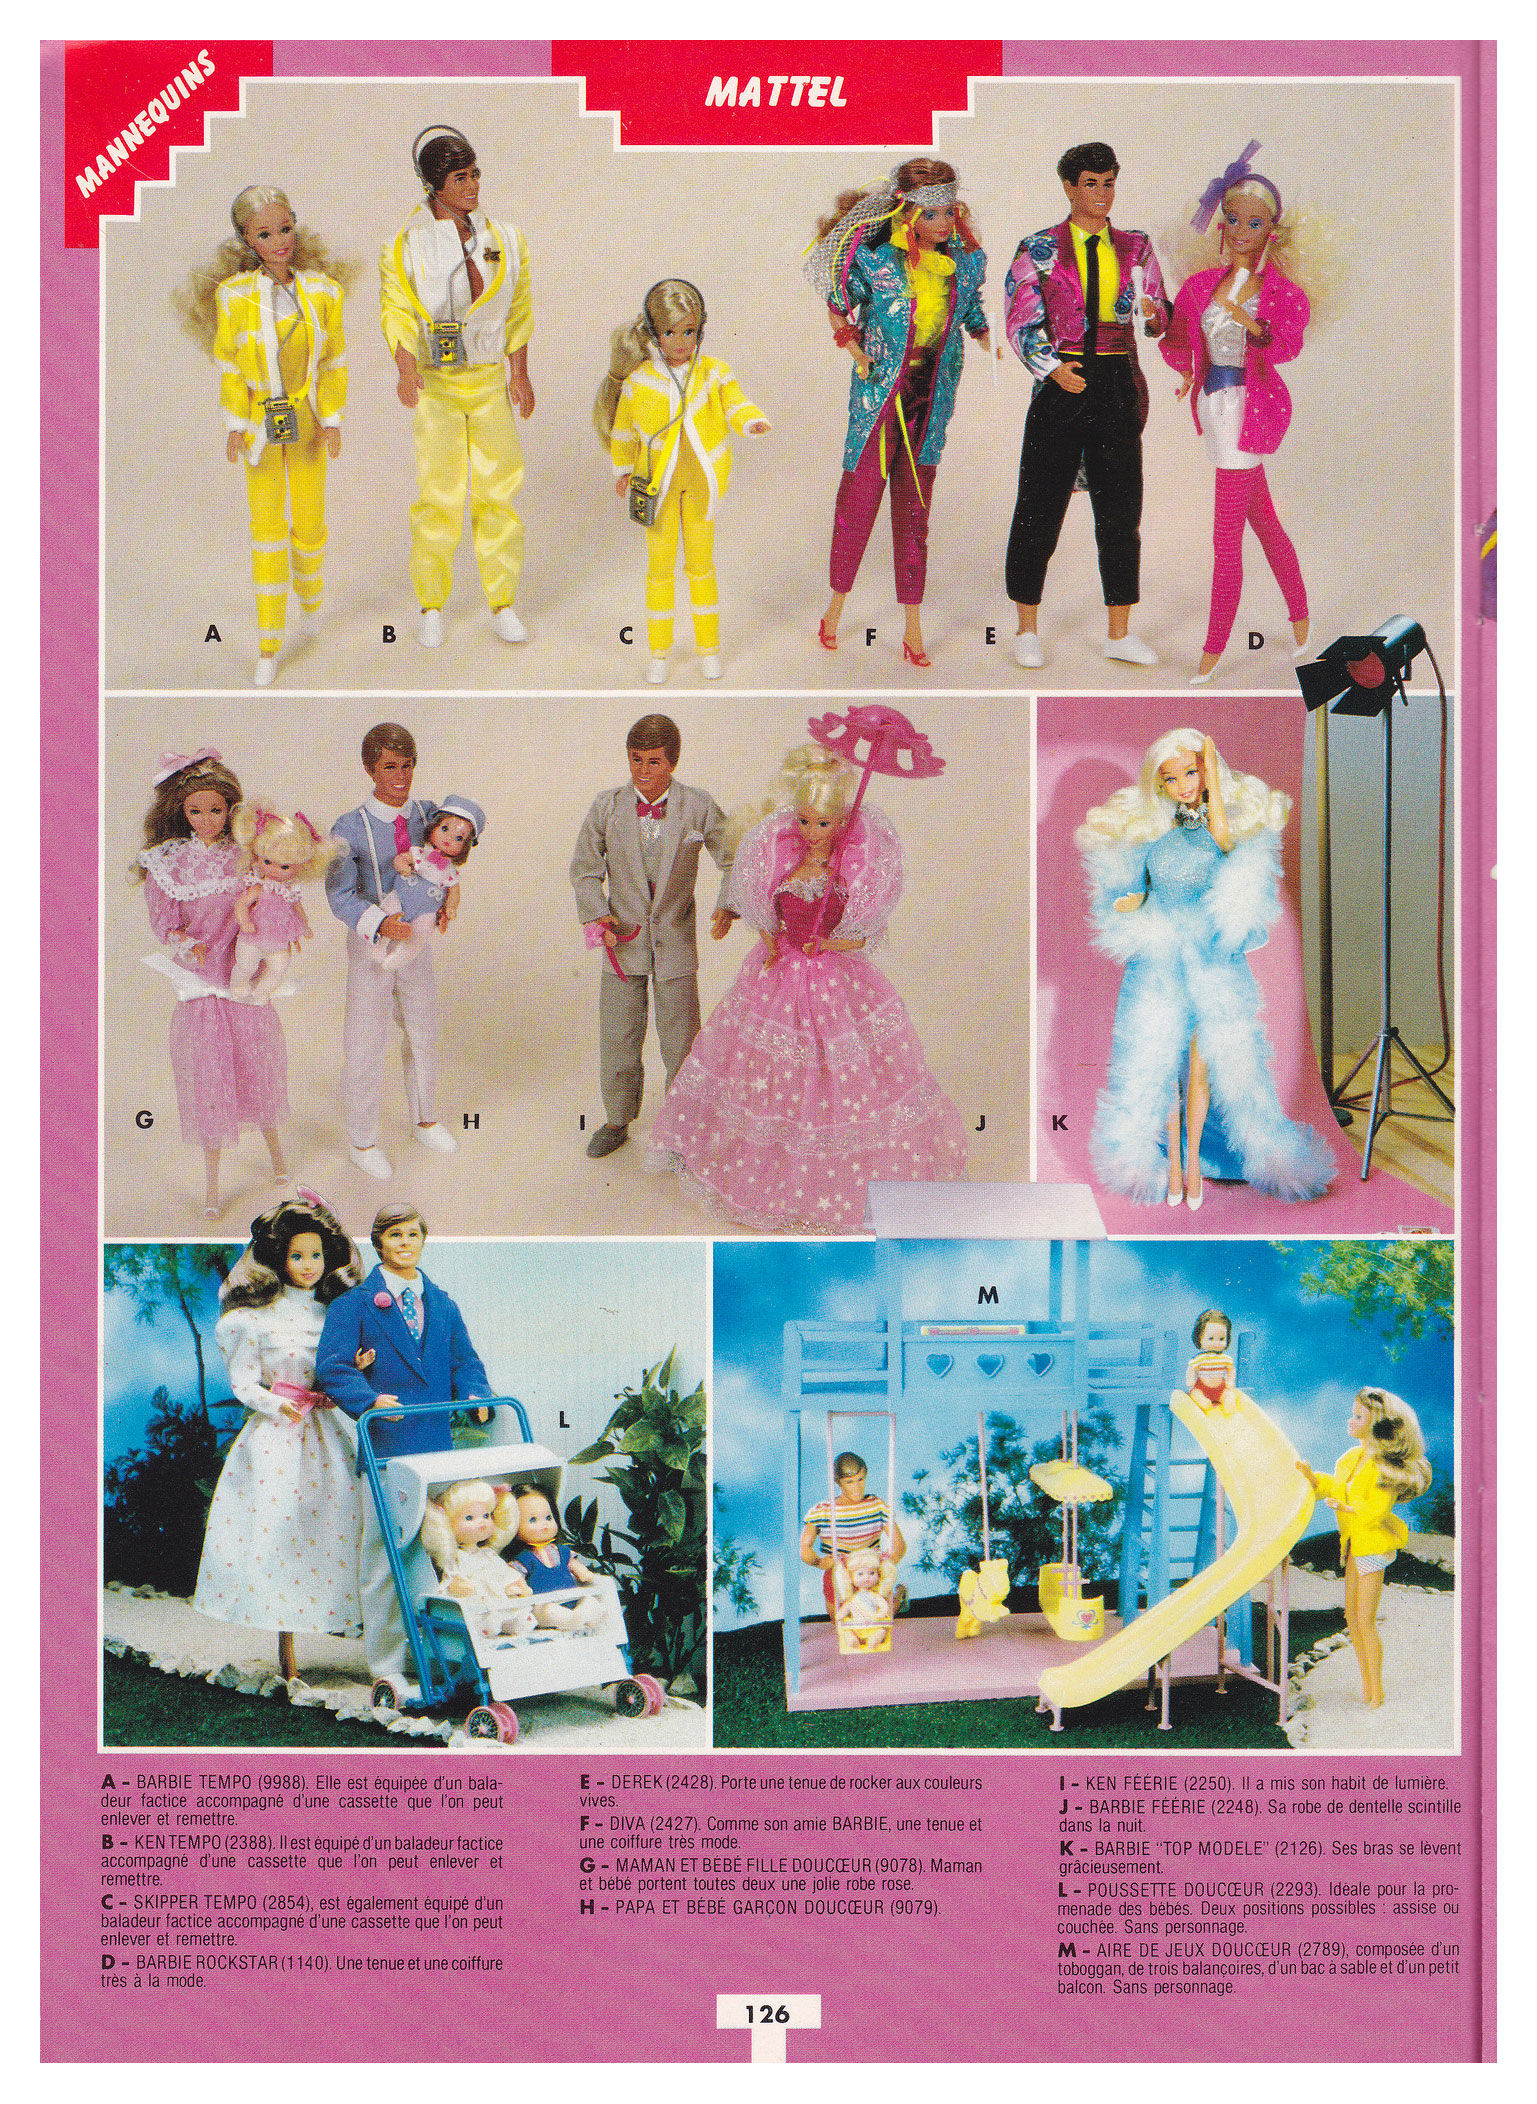 From 1986 French 1000 Jouets en Technicolor catalogue